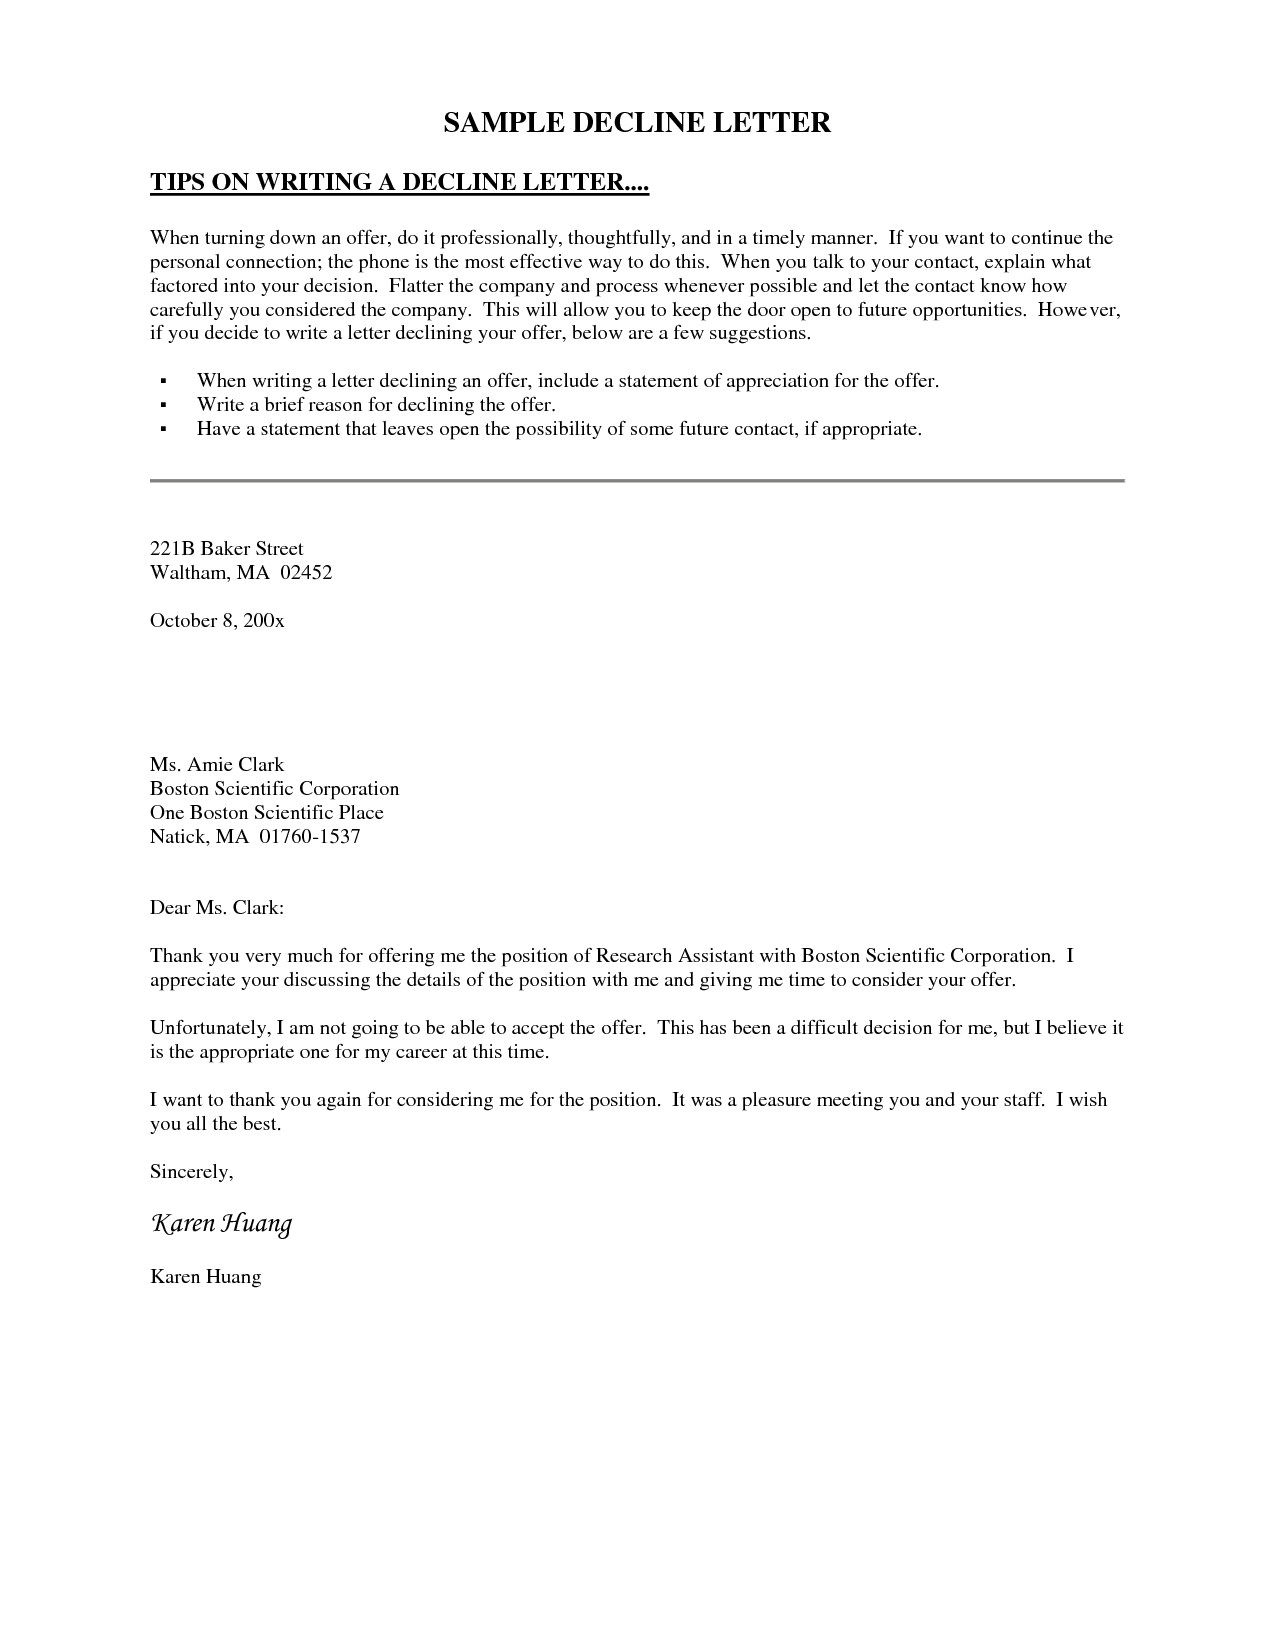 Decline Invitation Letter This Letter Template Declines An Invitation To Serve On An Organization S Board Of Dire Letter Sample Lettering Cover Letter Sample